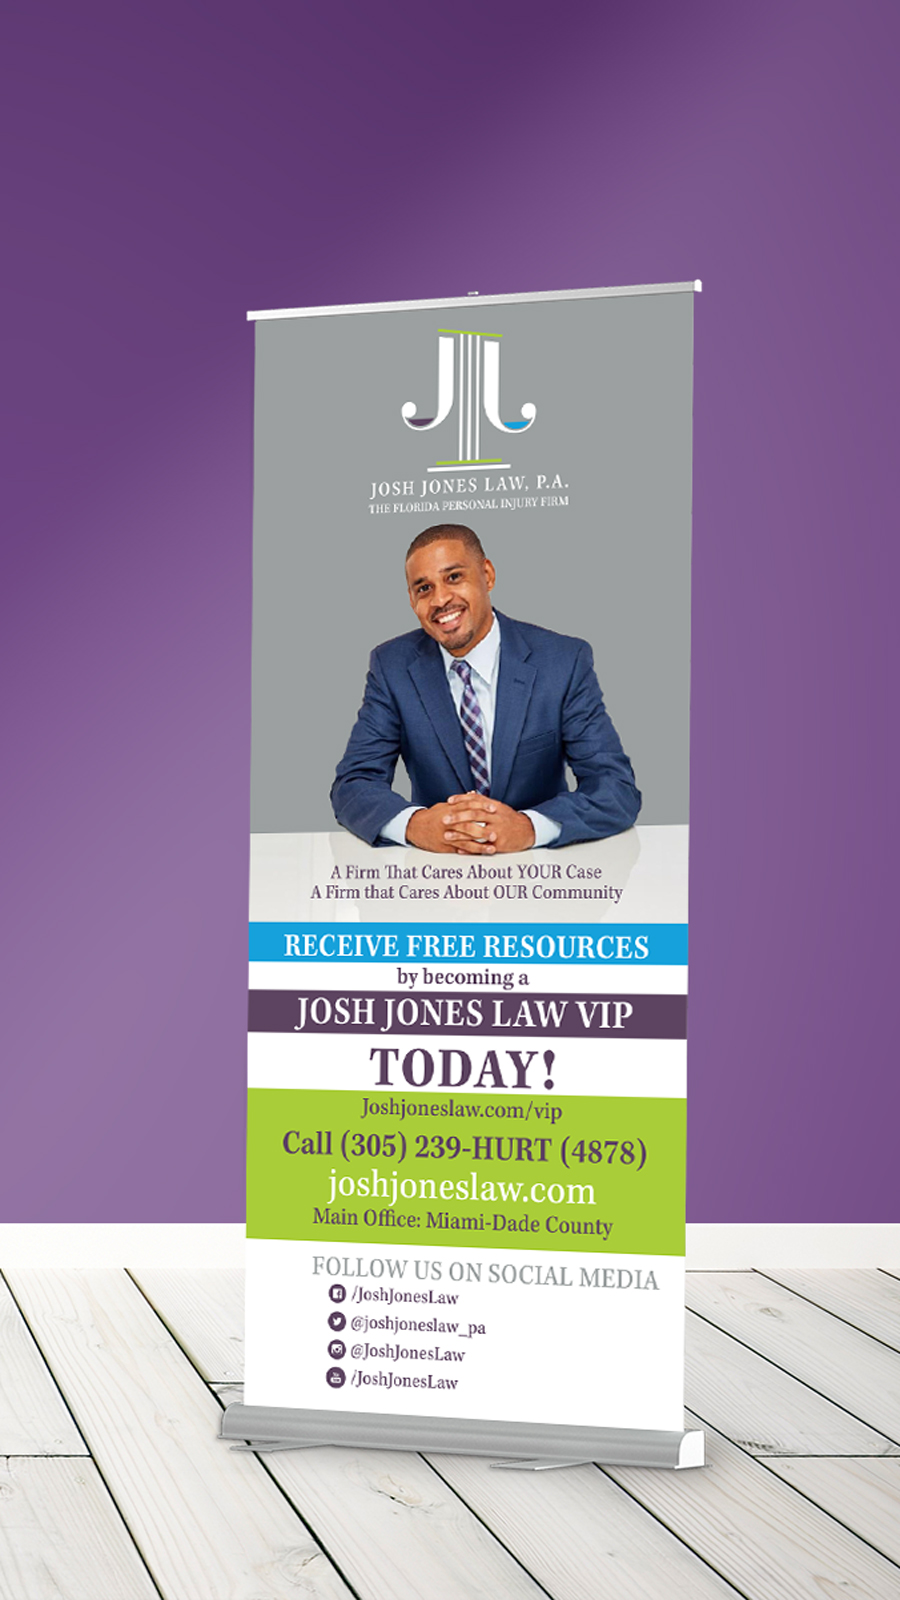 jjl-retractablebanner-rev1